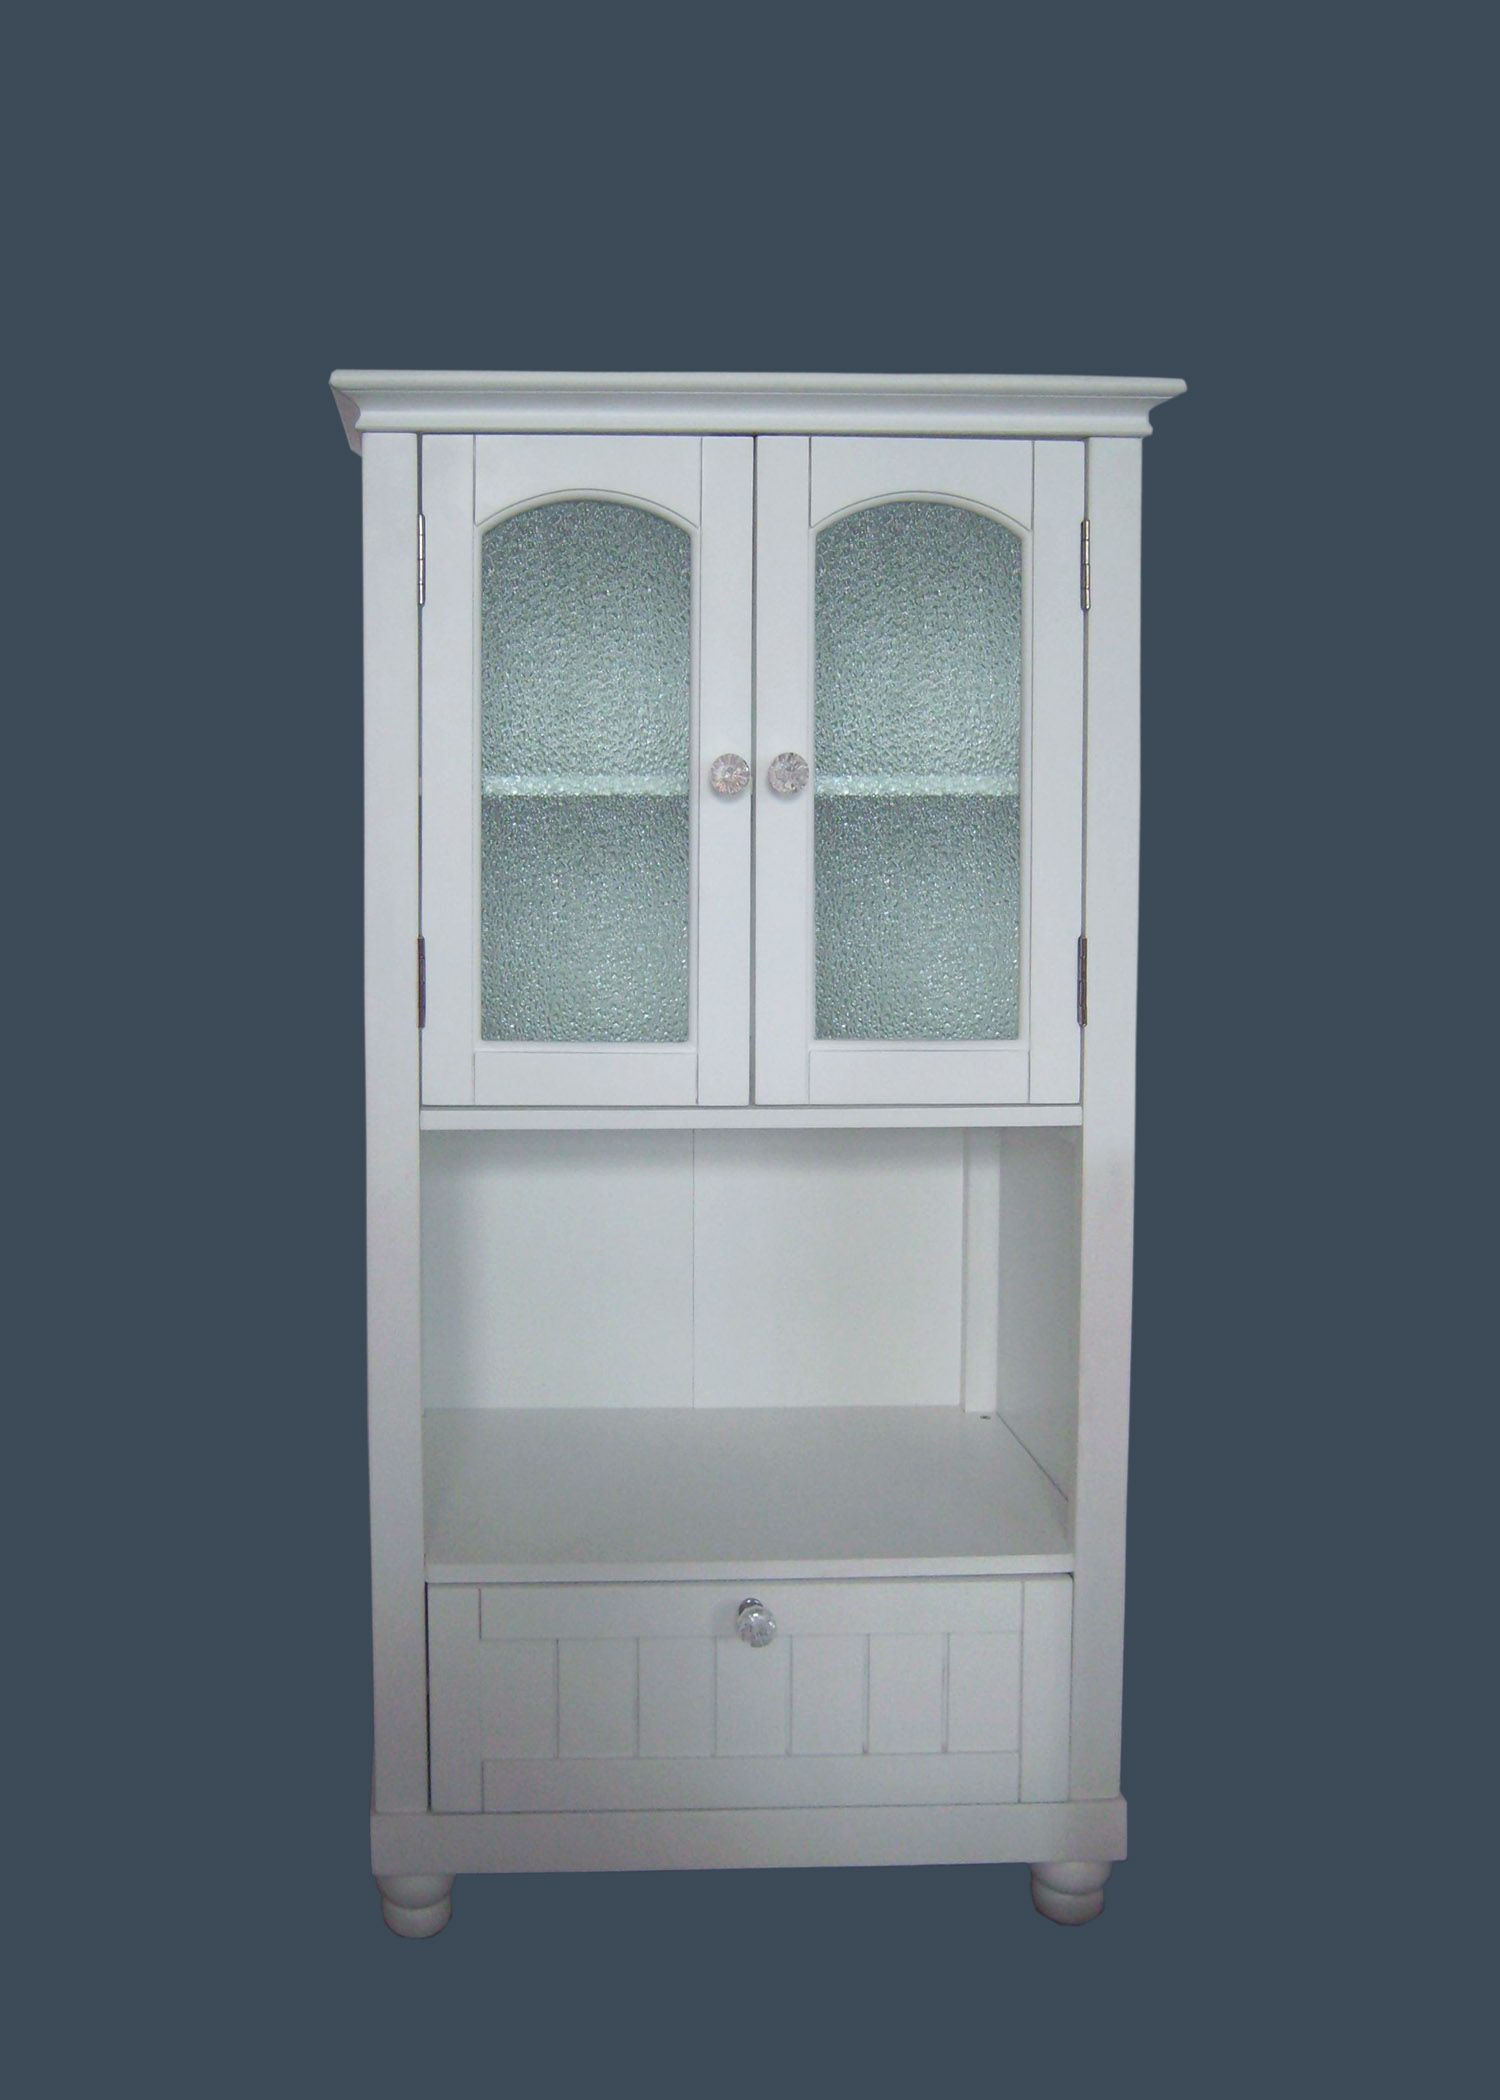 Bathroom Medicine Cabinet Ideas Glass Door Bathroom Cabinet 002